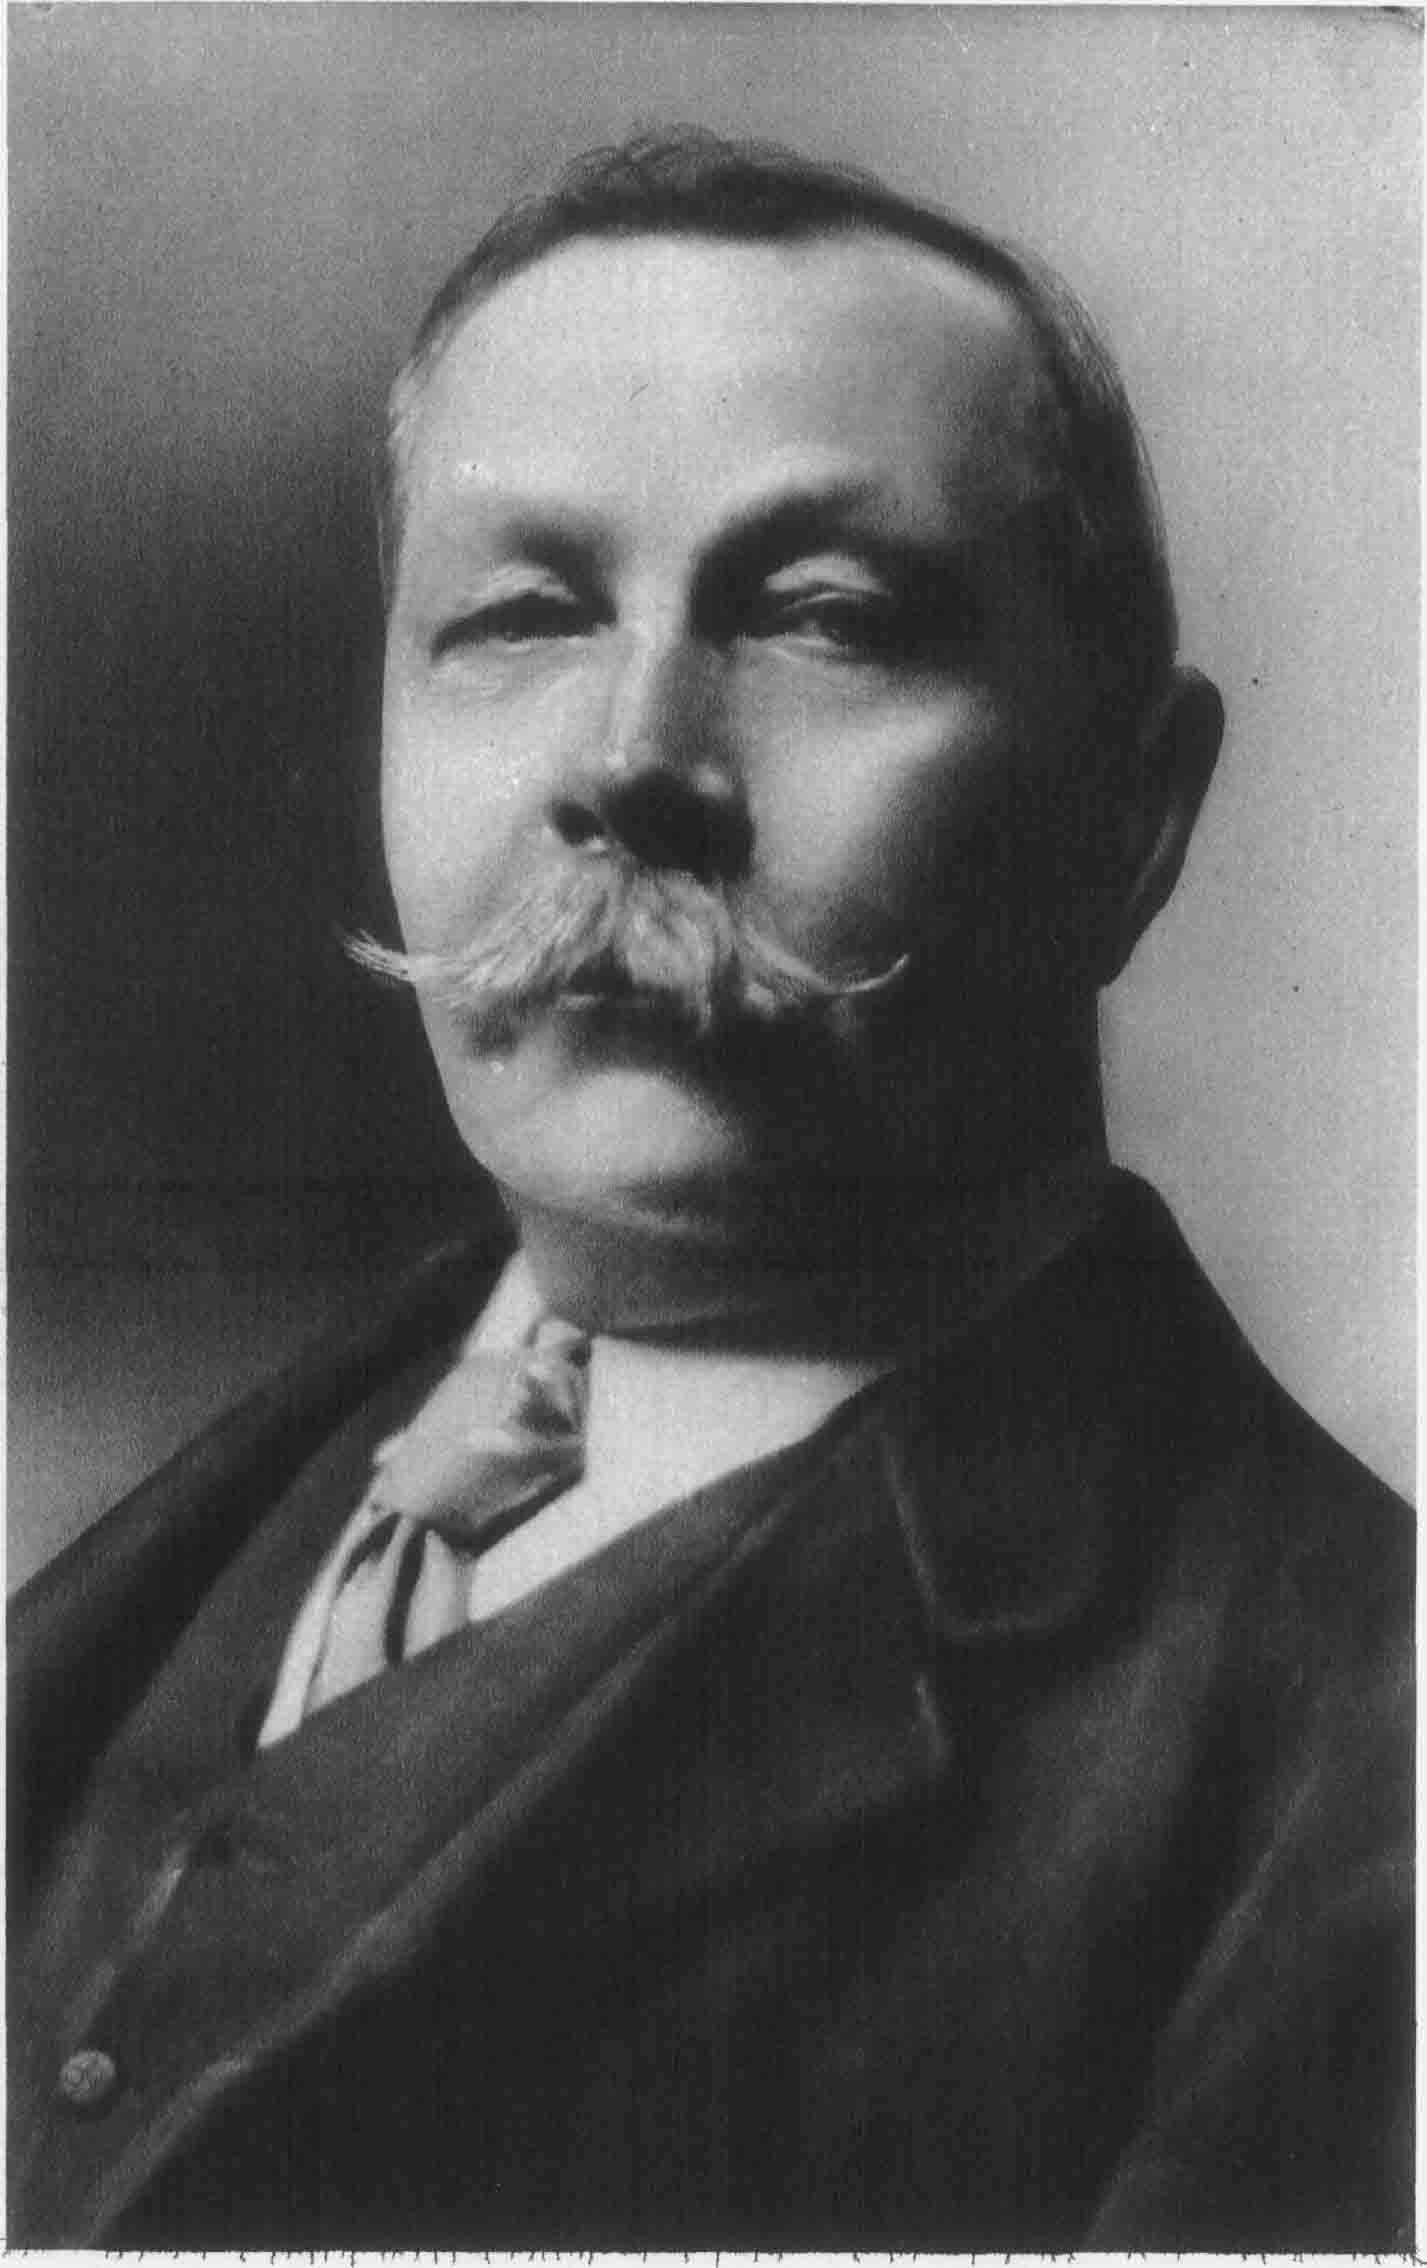 """conan doyle 2 essay The short story, """"a scandal in bohemia,"""" is one of the many stories that sir arthur conan doyle wrote that starred his most famous character, the master sleuth, sherlock holmes."""